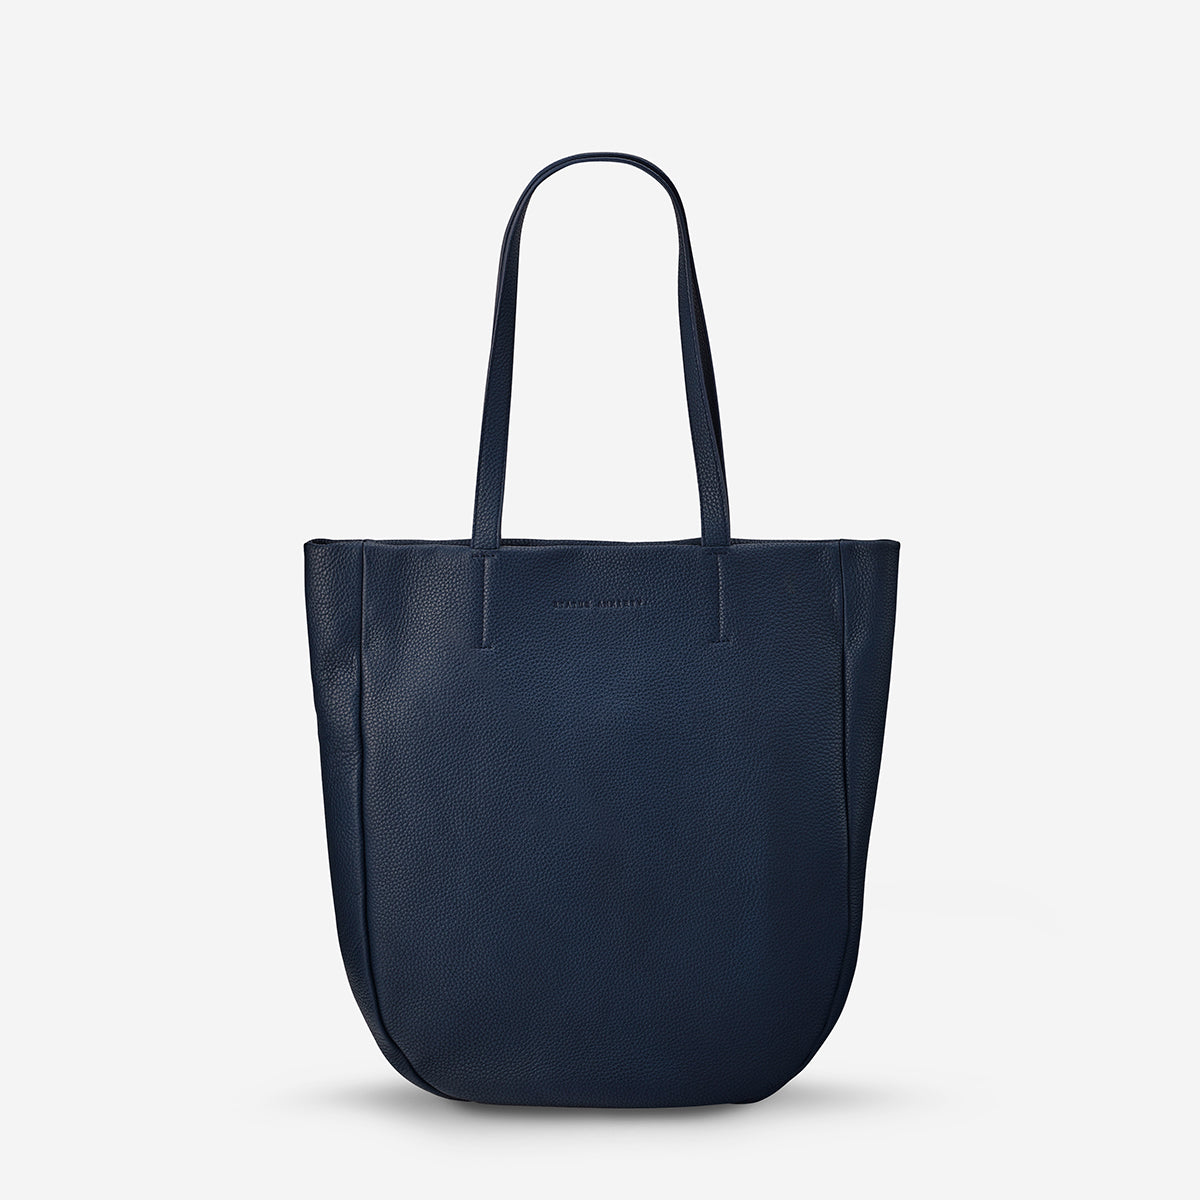 APPOINTED - navy blue · Status Anxiety Appointed Women s Large Leather Tote  Bag - Navy ... dcef9d3b54